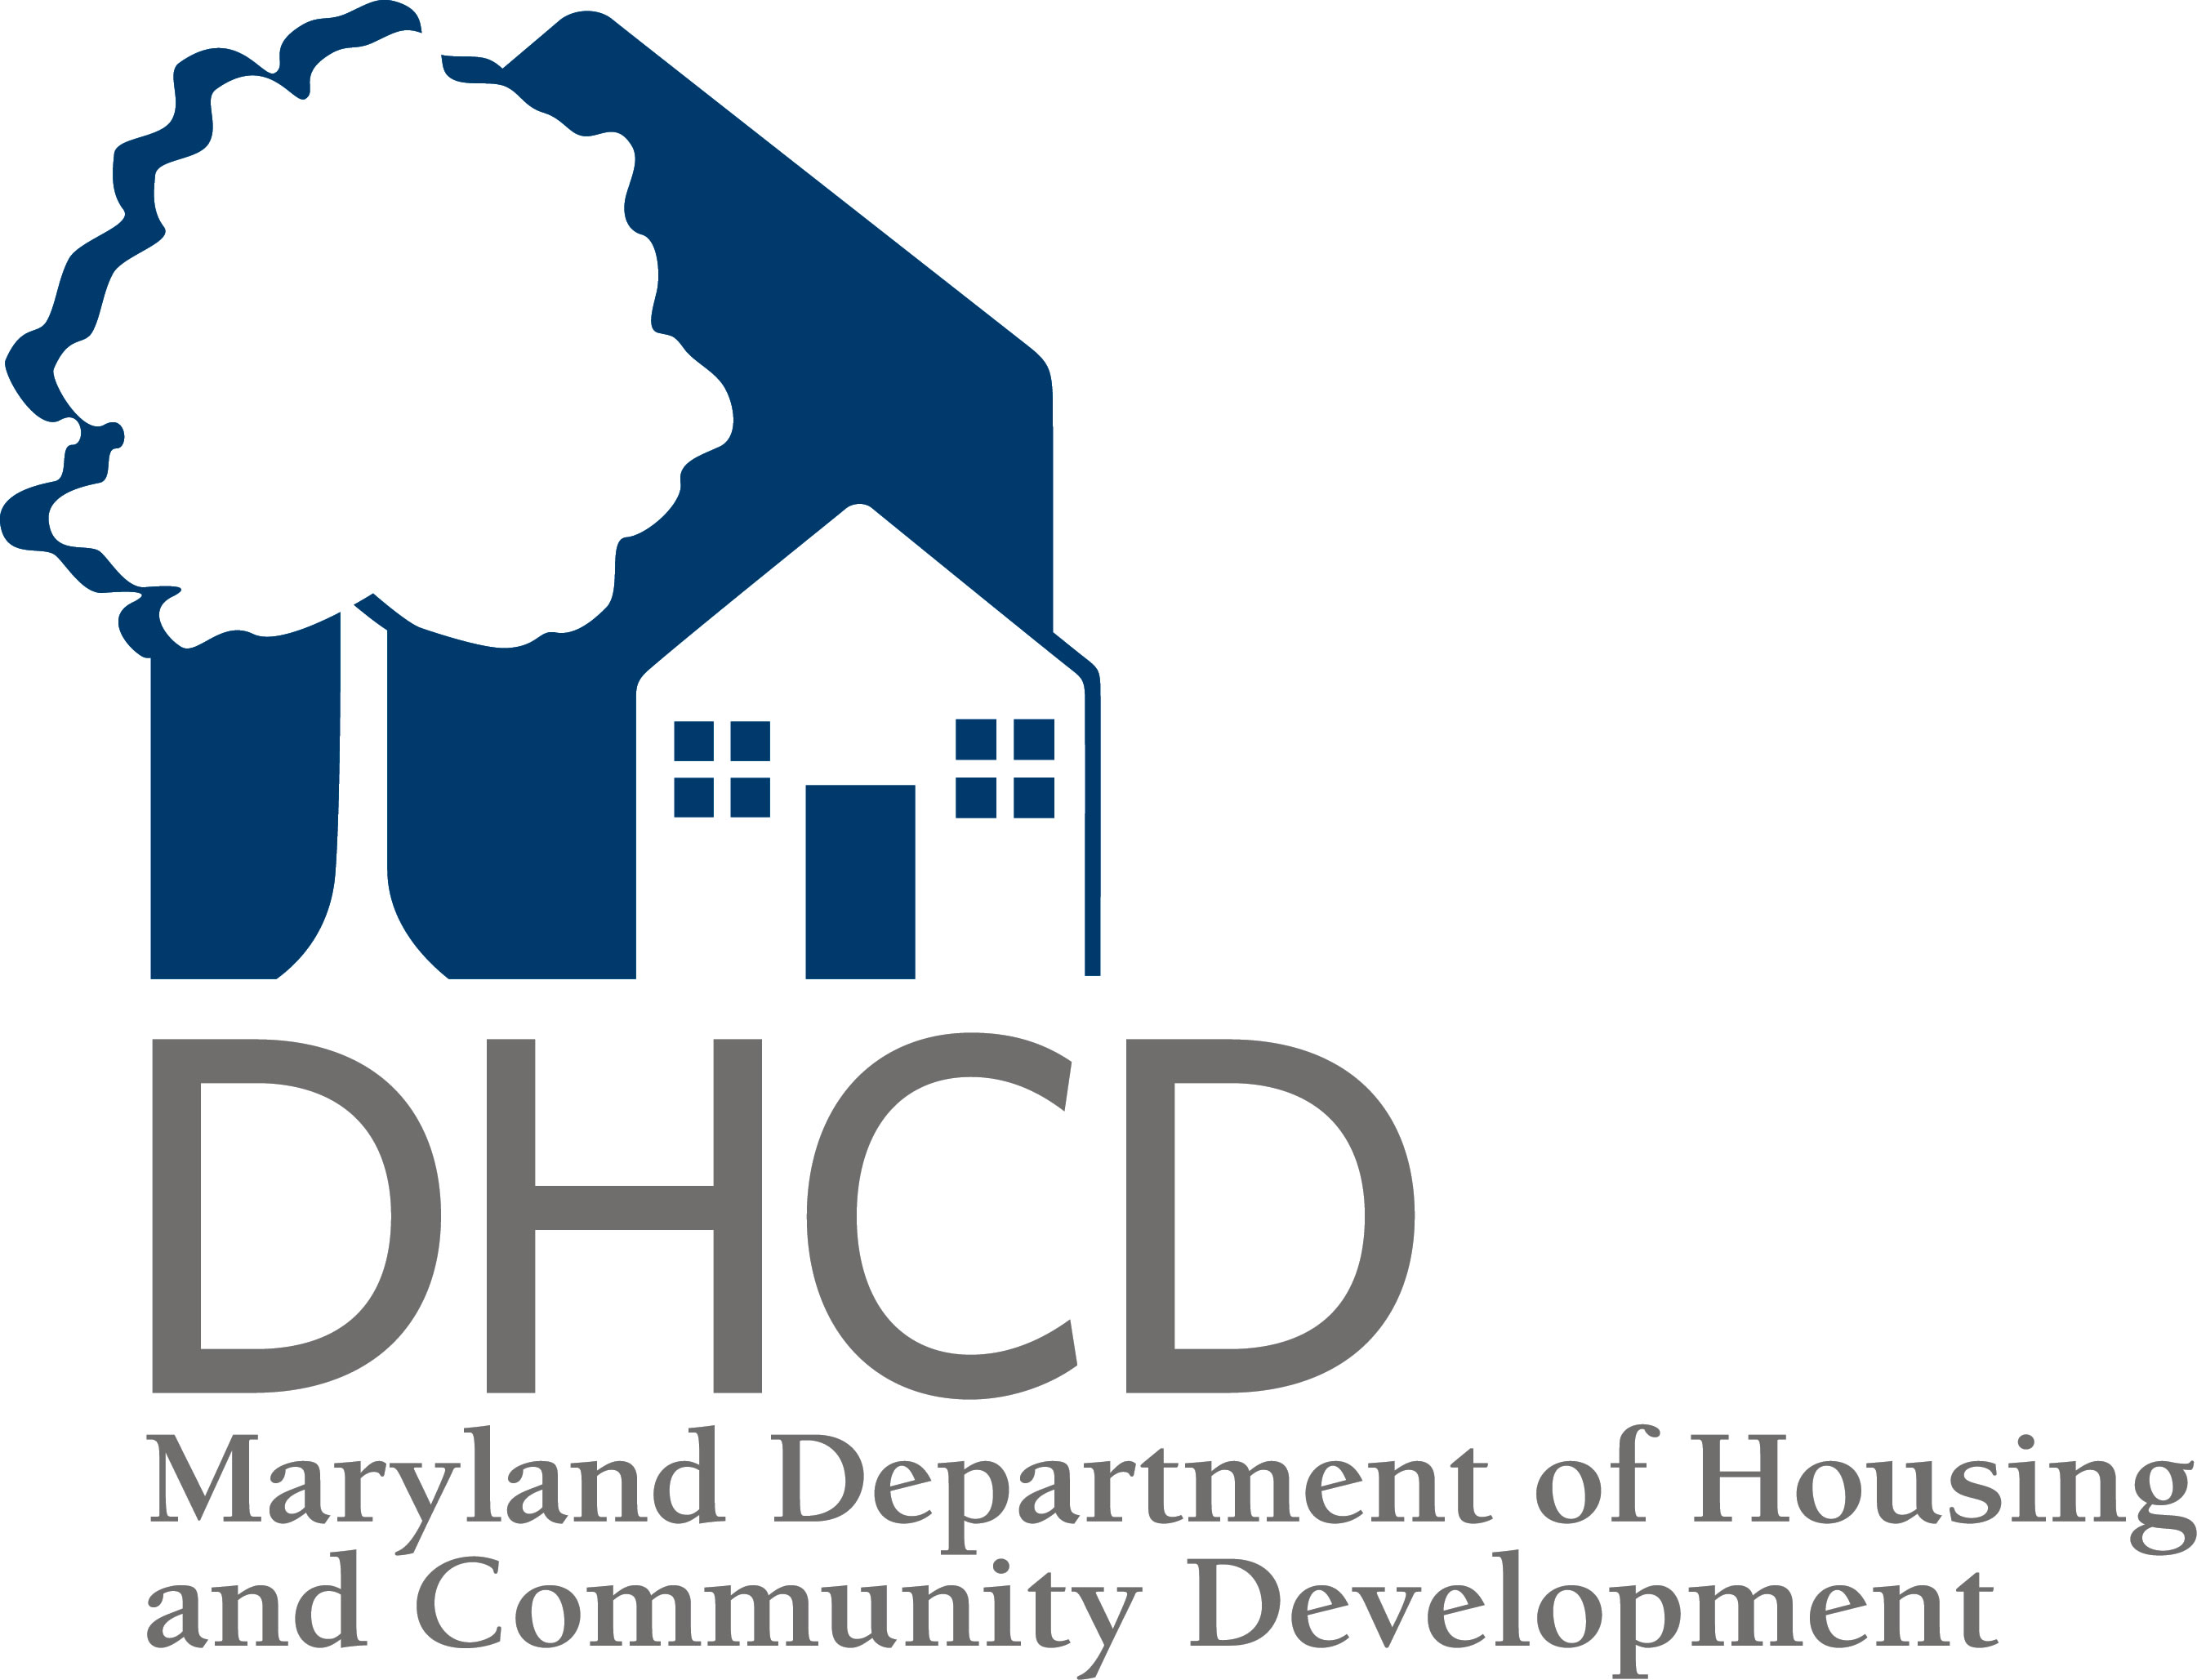 Maryland Department of Housing and Community Development Logo